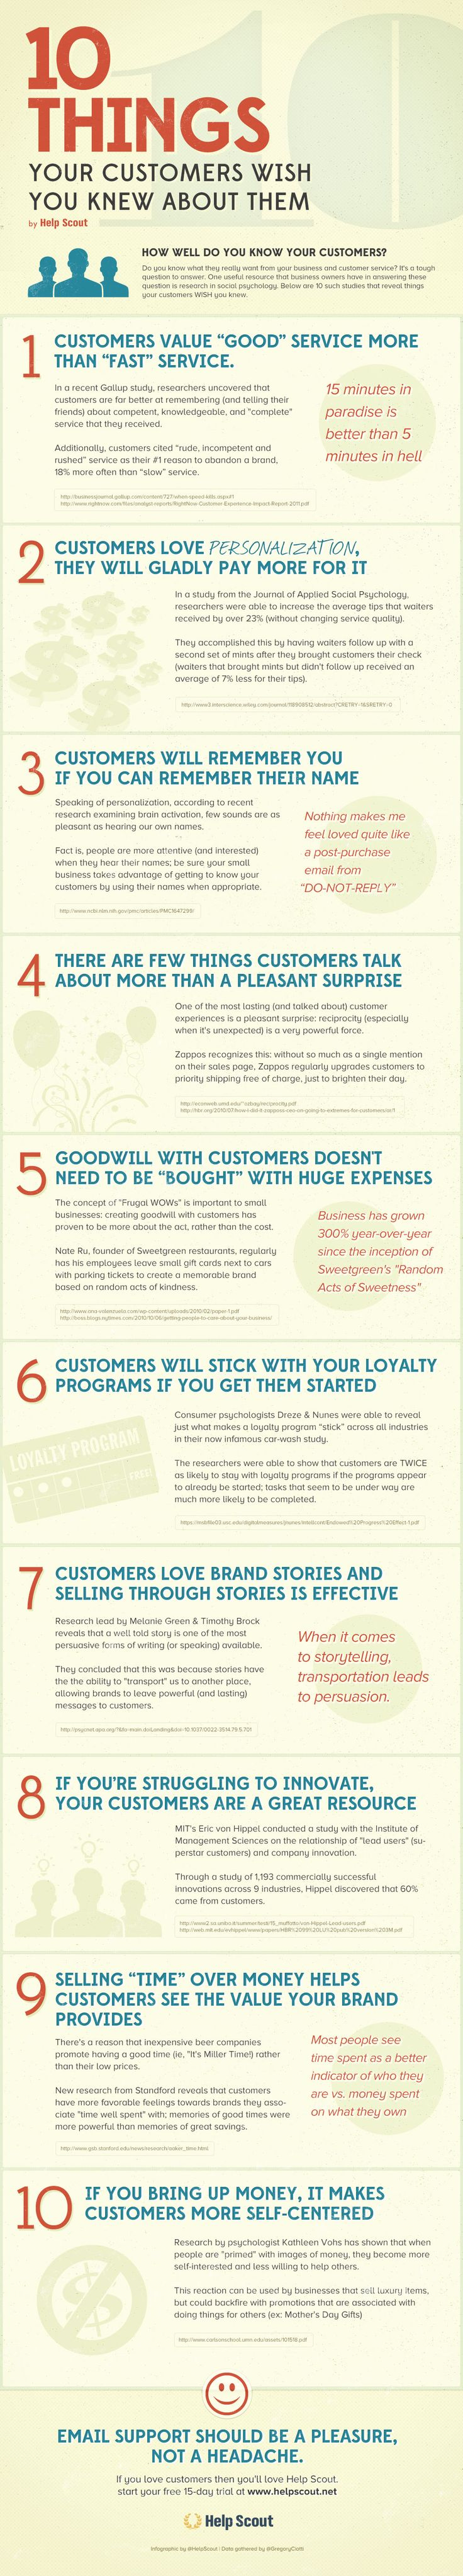 best images about understanding customer service 10 things your customers wish you knew about them